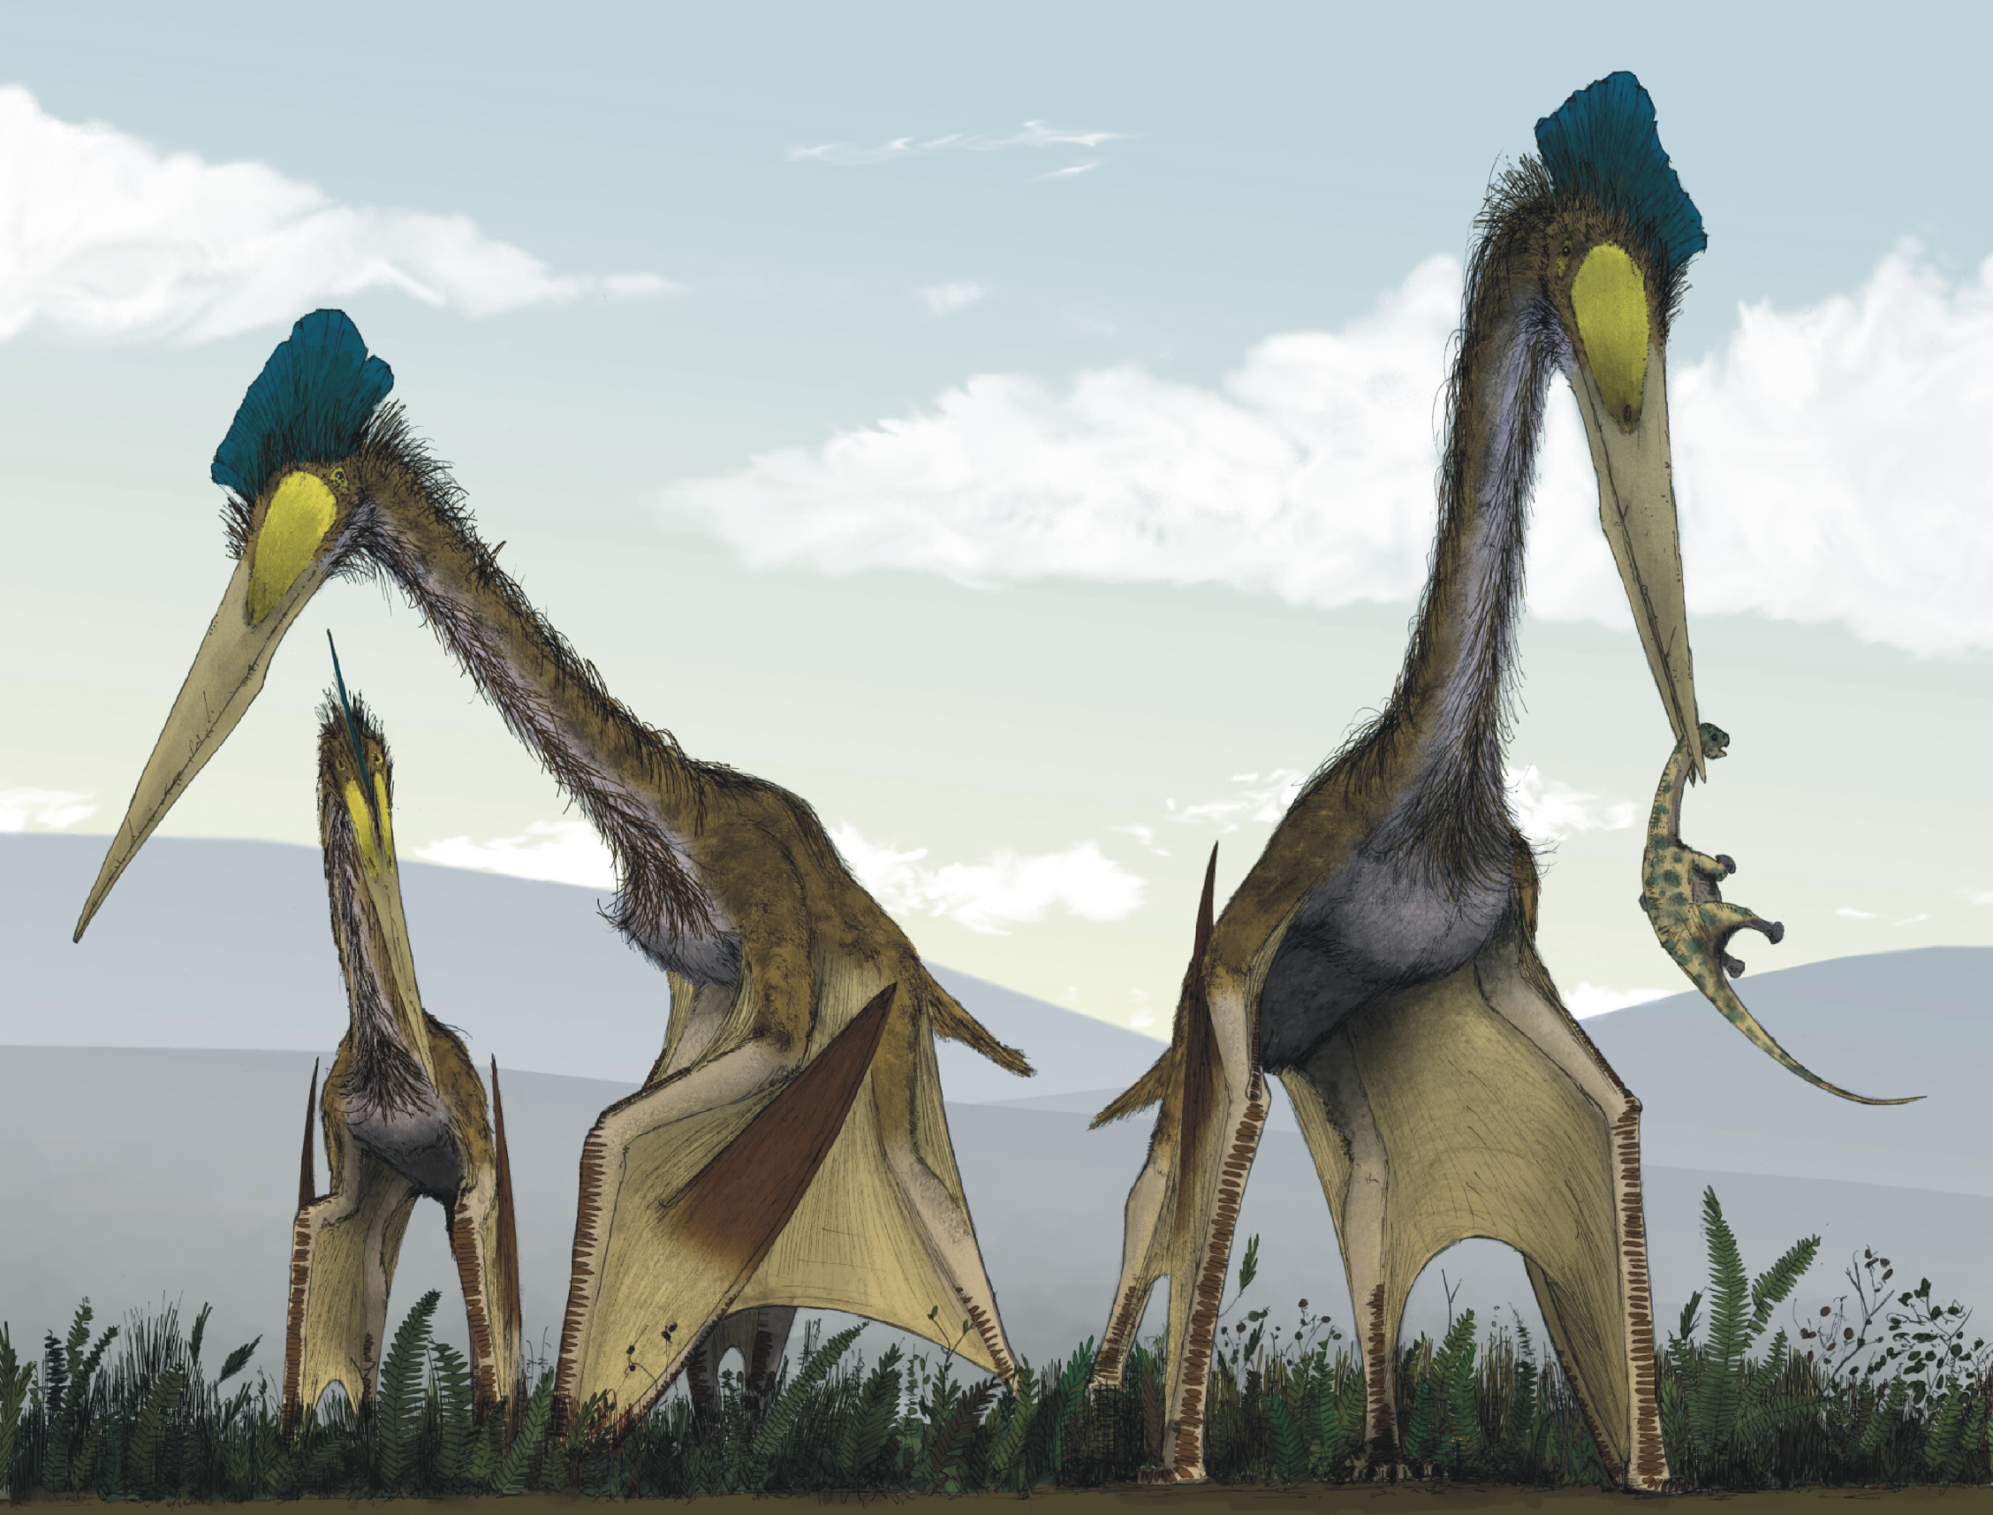 Intact pterosaur eggs reported found with parents